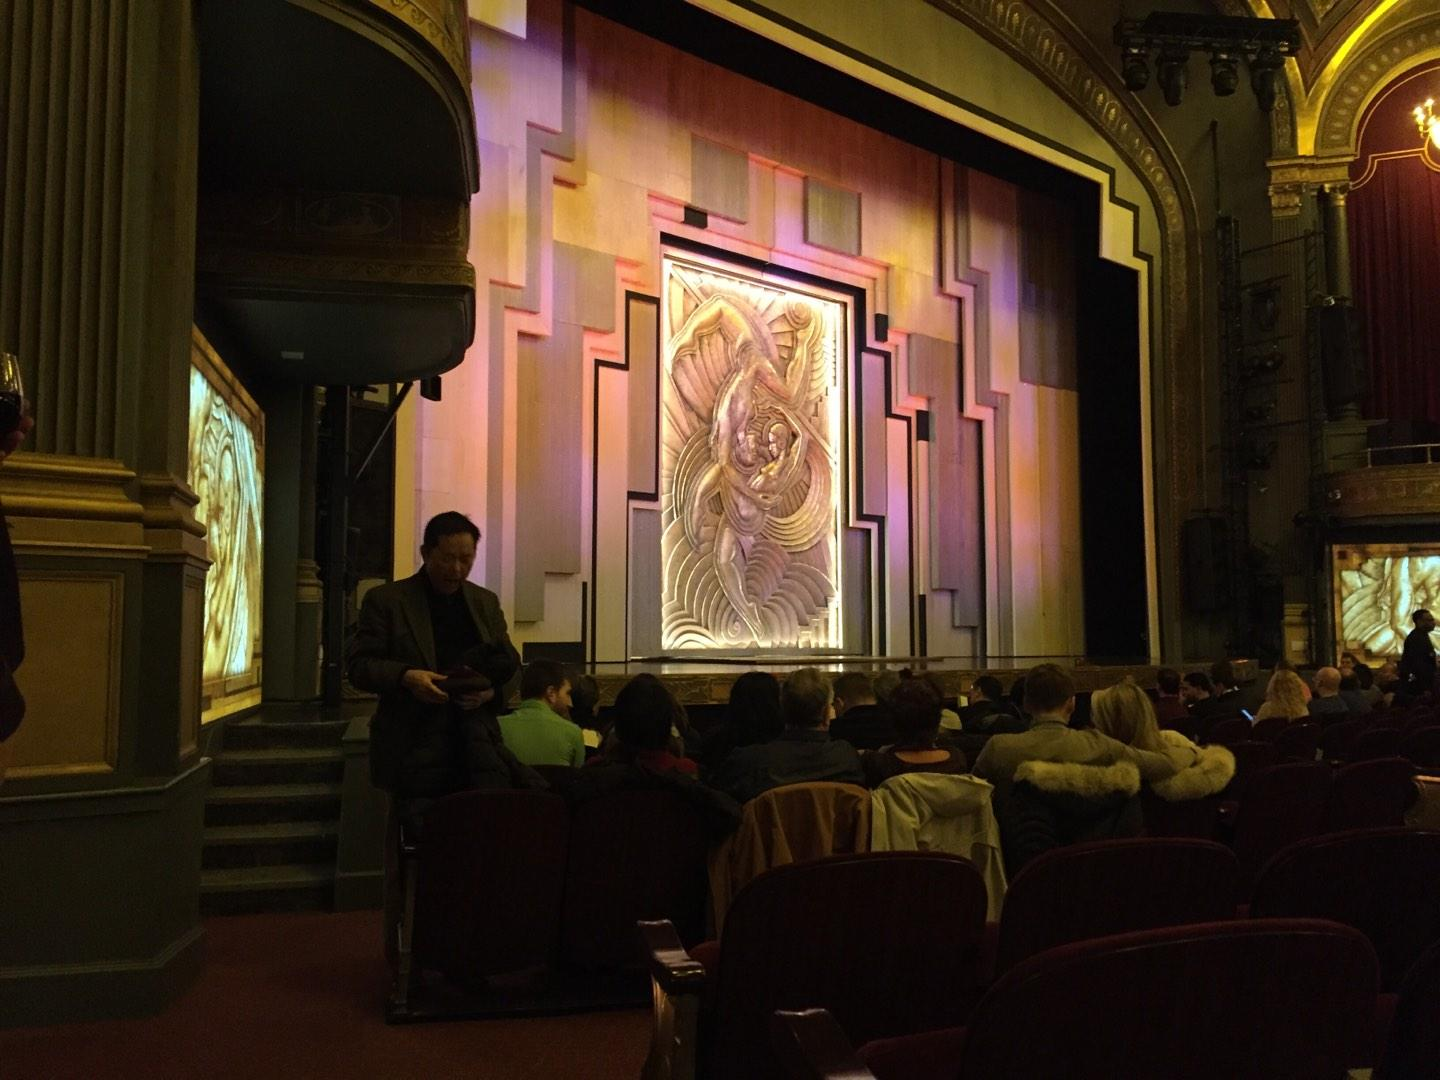 Lyric Theatre Section Orch Row L Seat 27